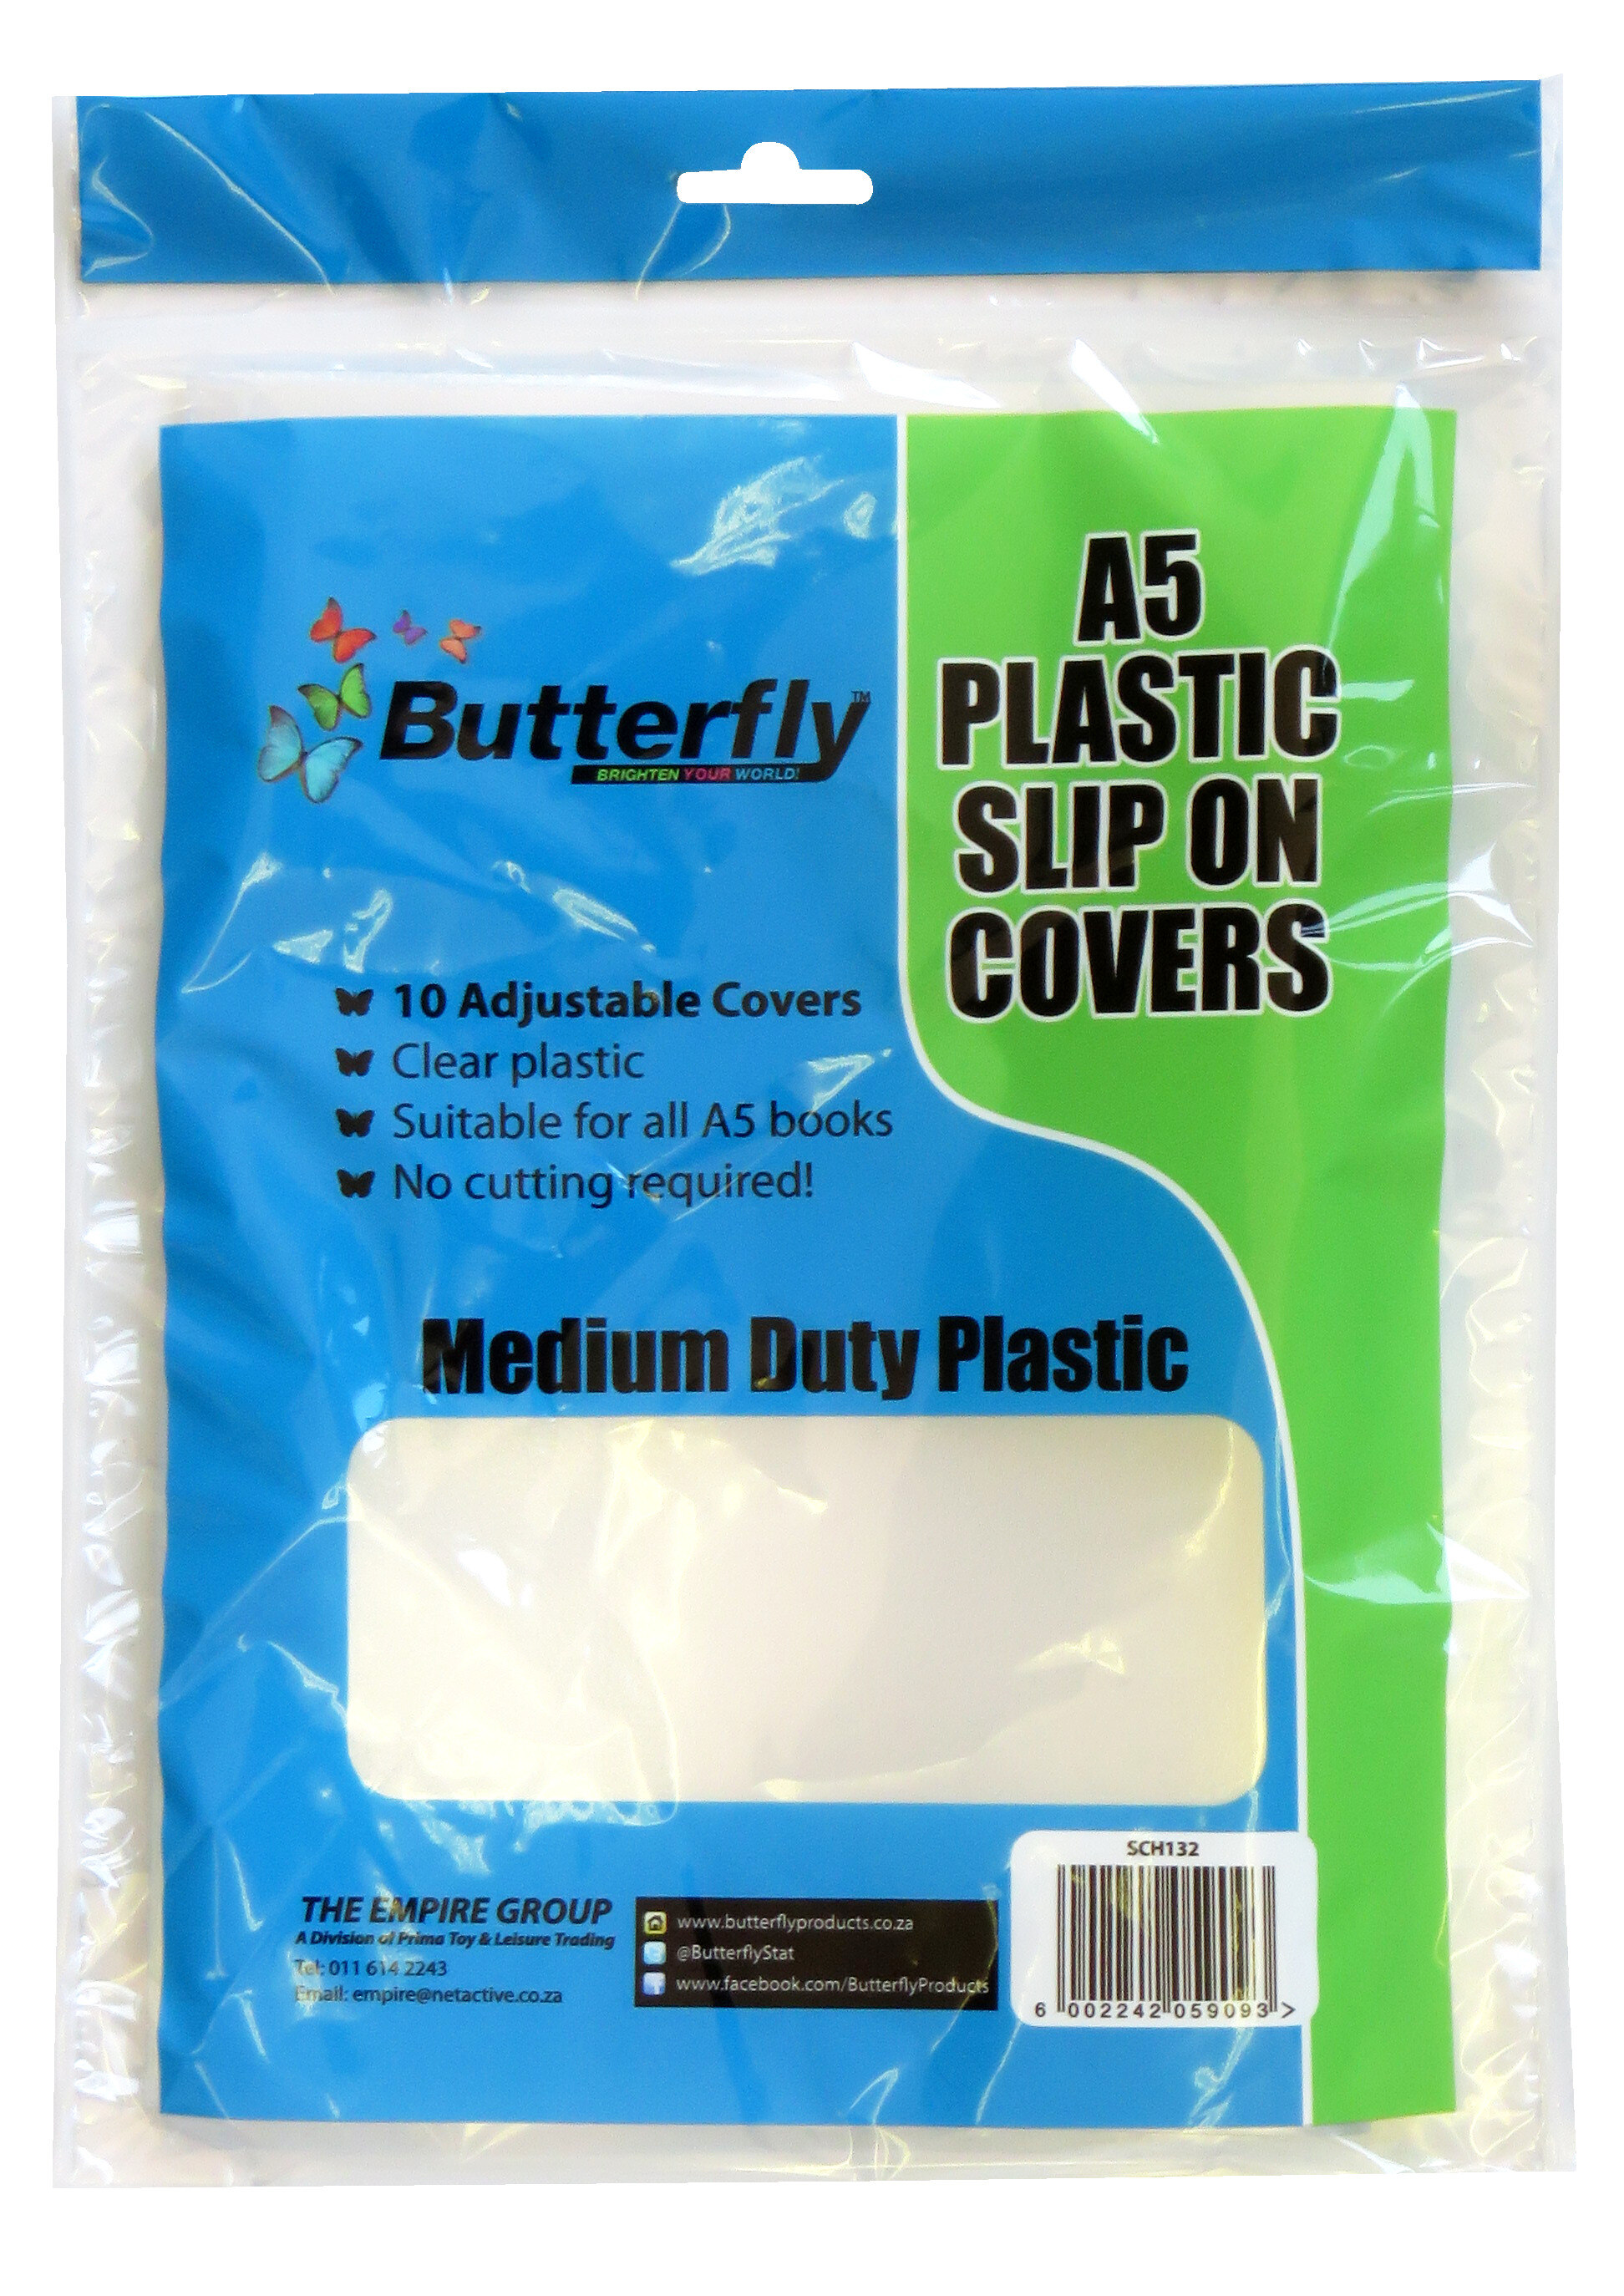 A5 Plastic Slip-On Covers - Clear - 10 Pack 50 Micron